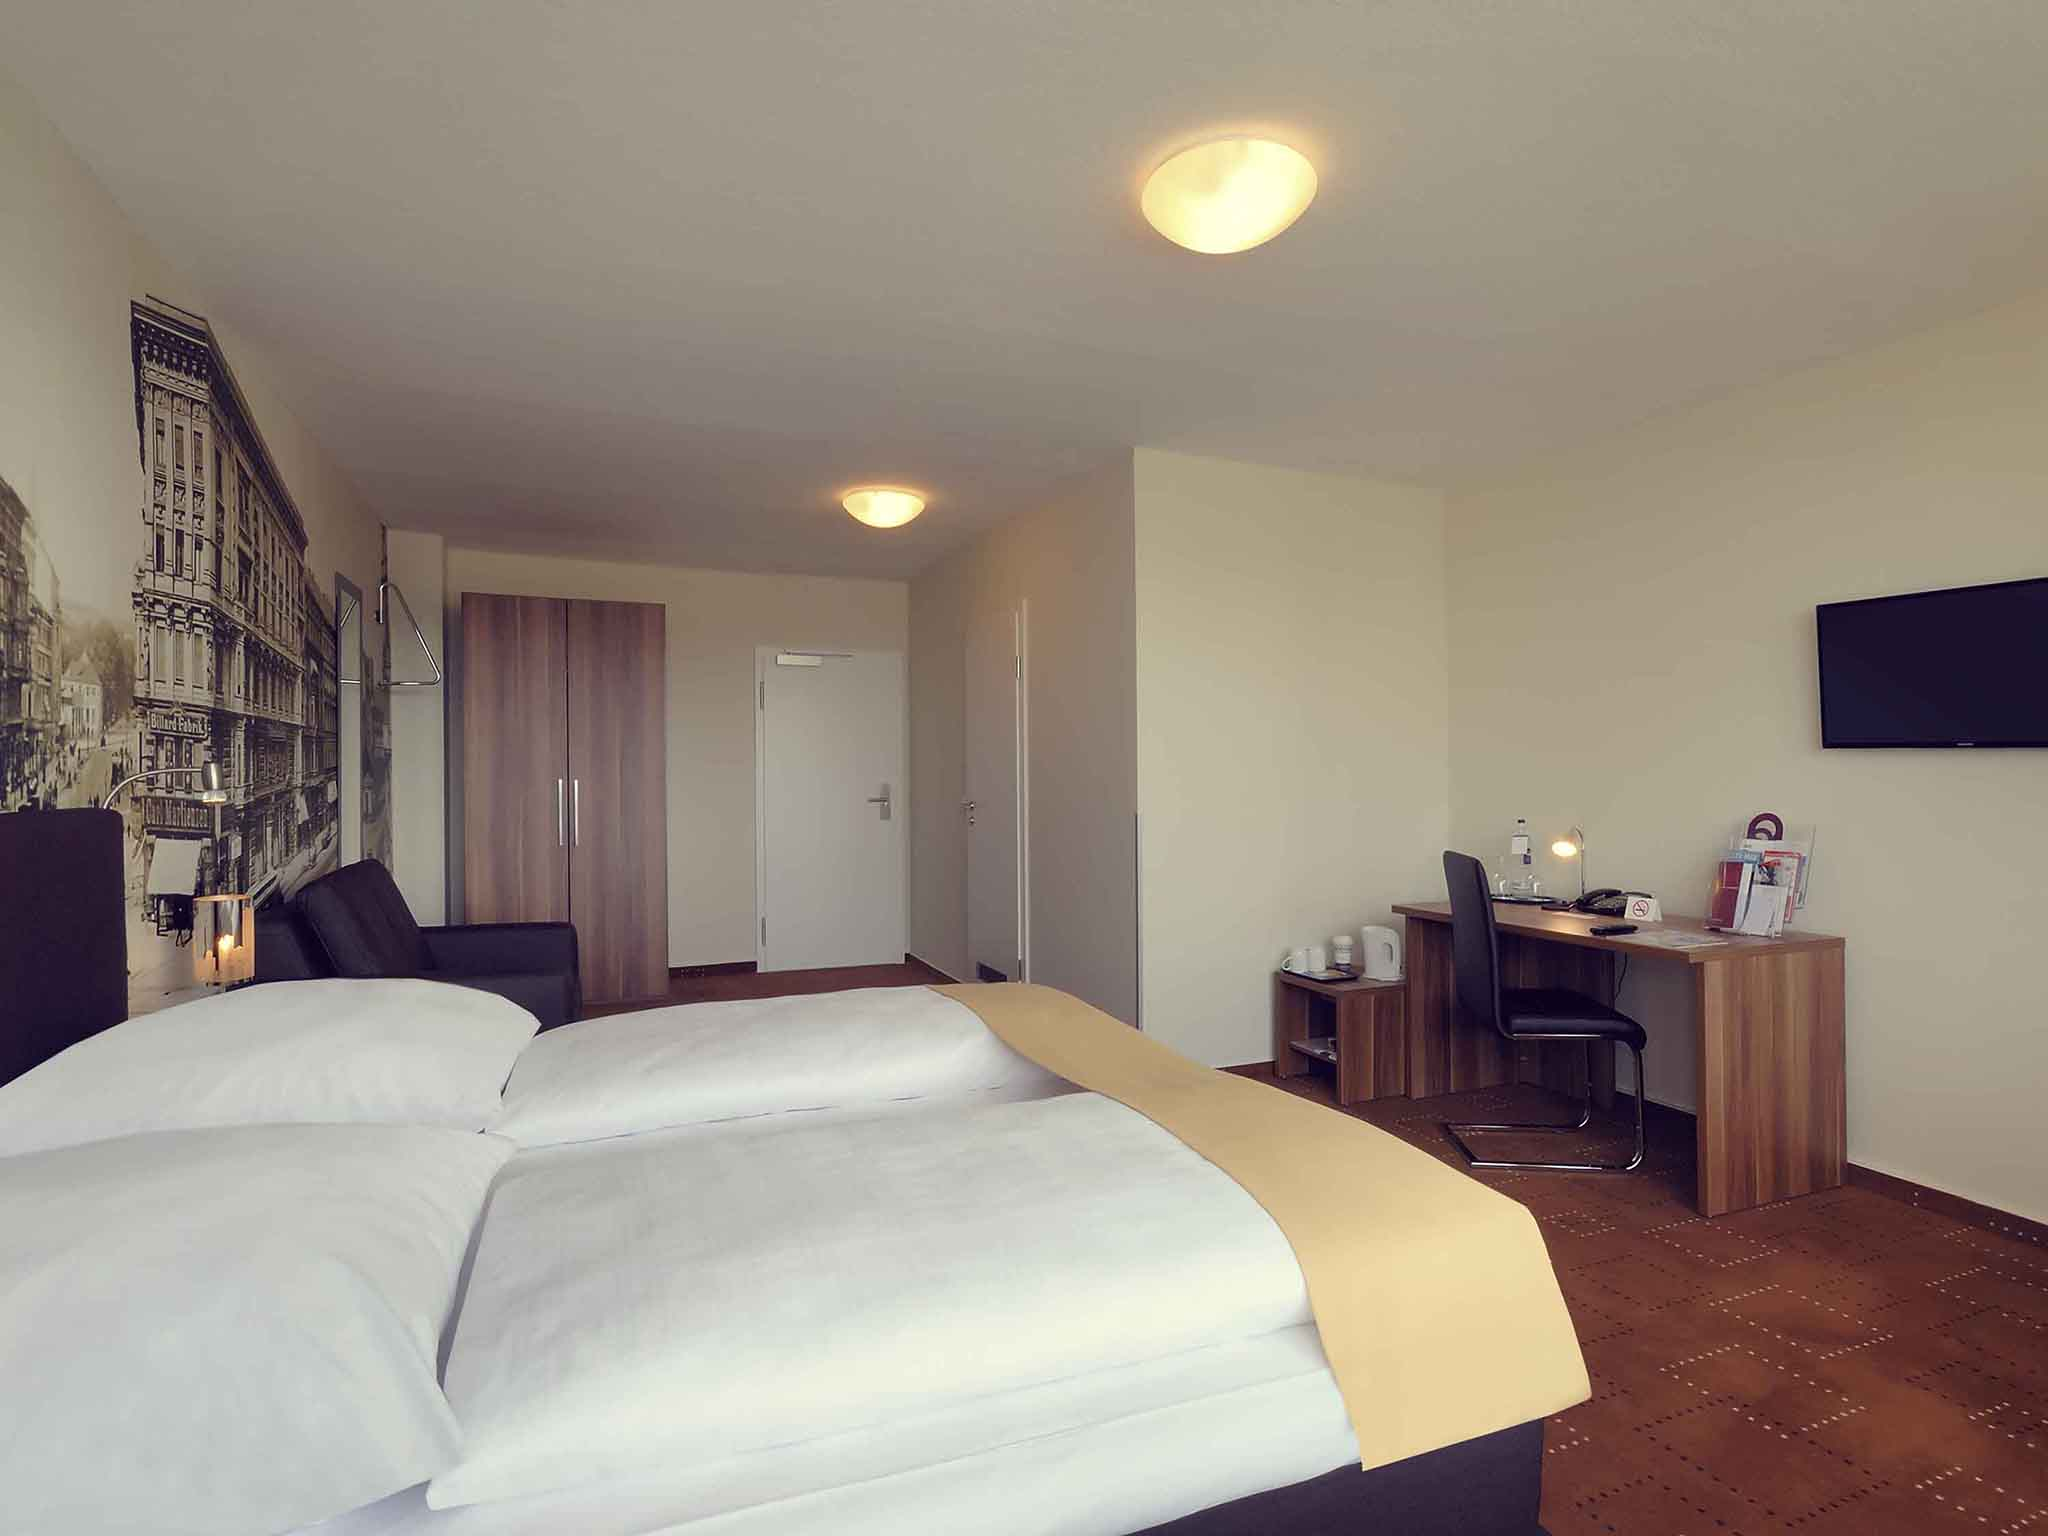 Hotel – Mercure Hotel Berlin am Alexanderplatz